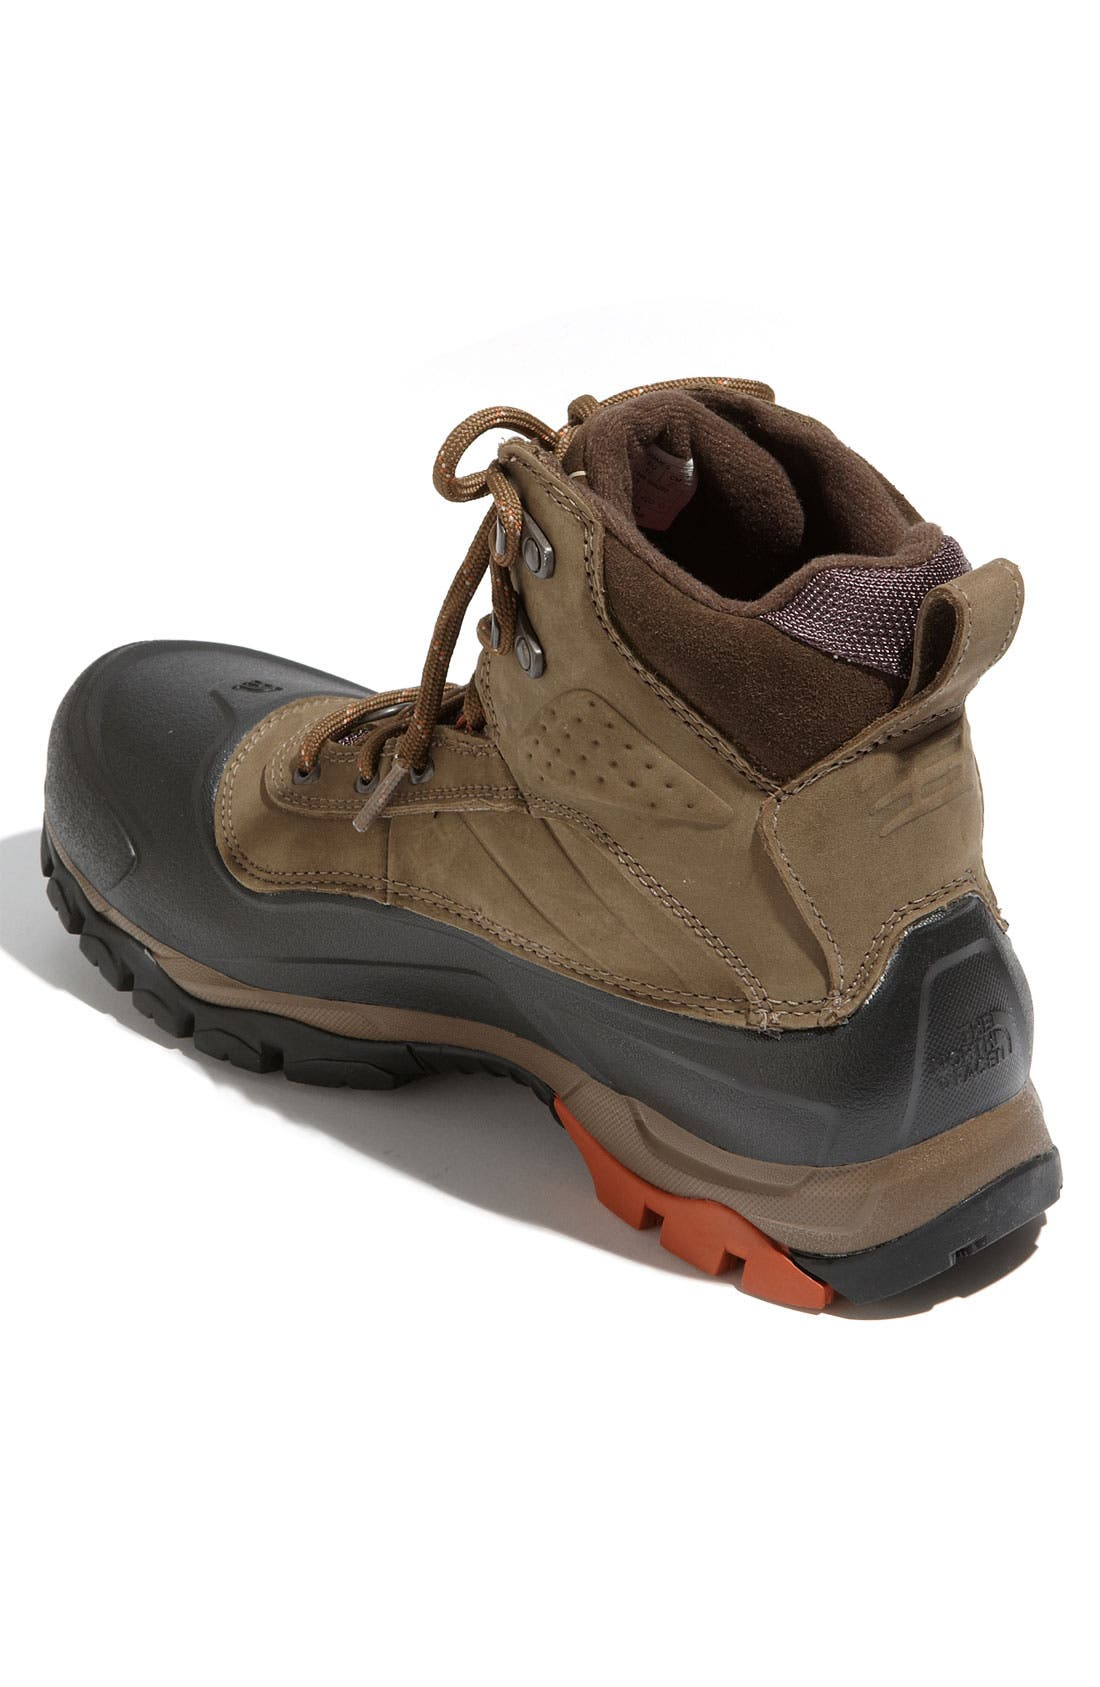 Alternate Image 2  - The North Face 'Snow-Chute' Boot